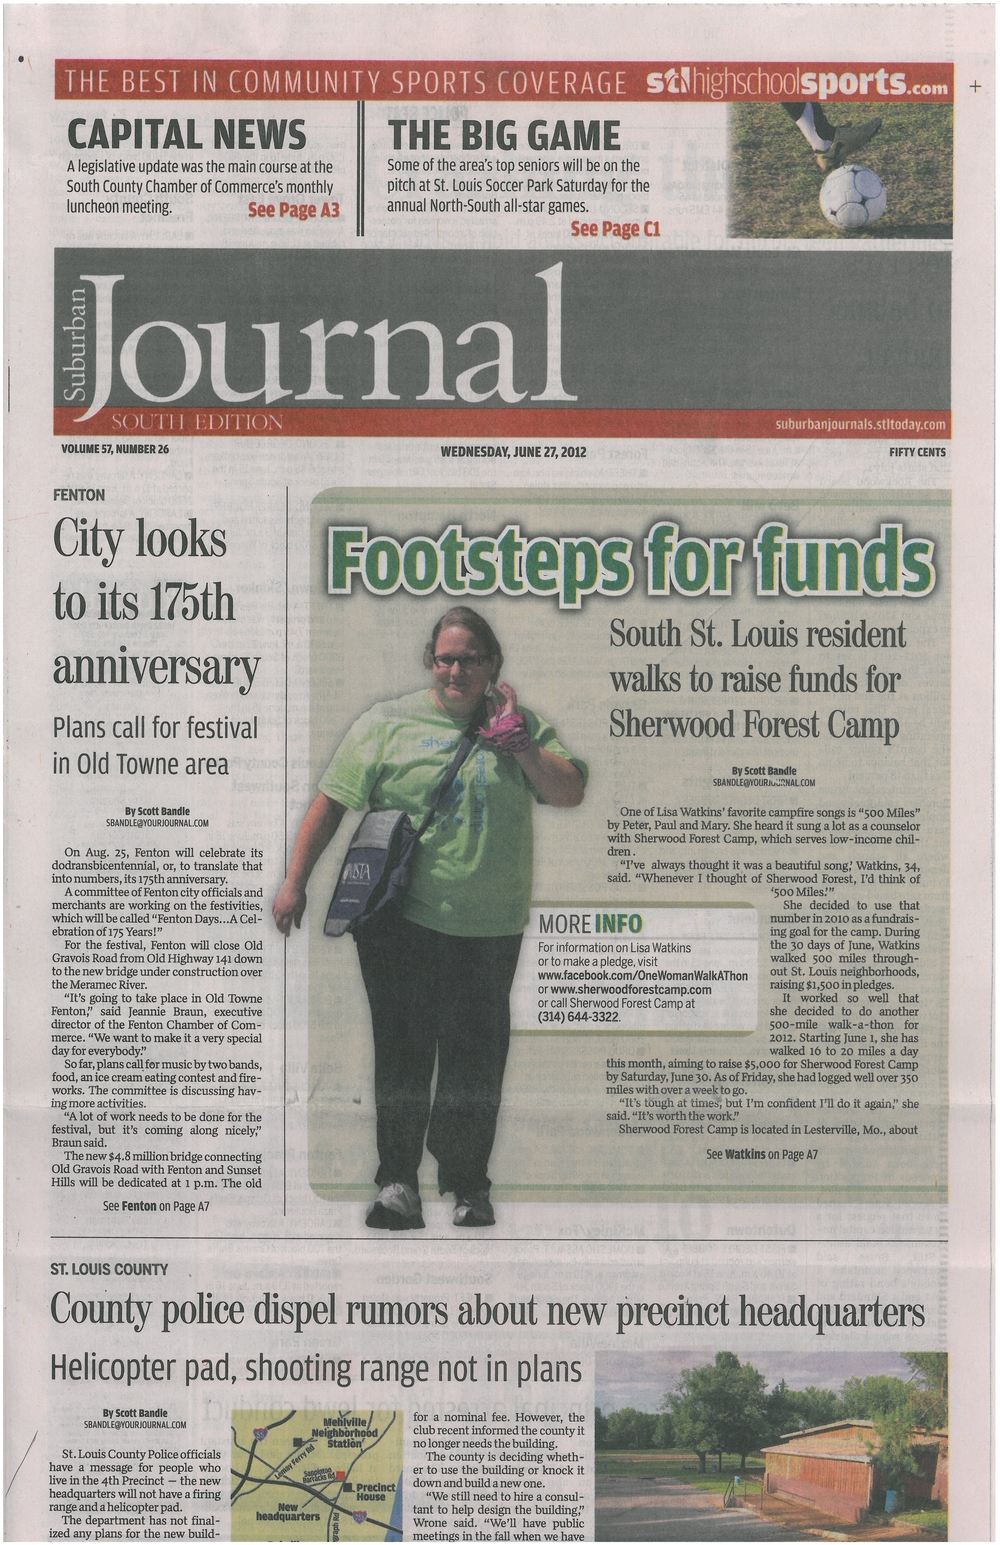 Front-page story for Sherwood Forest Camp's fundraiser - Footsteps for Funds